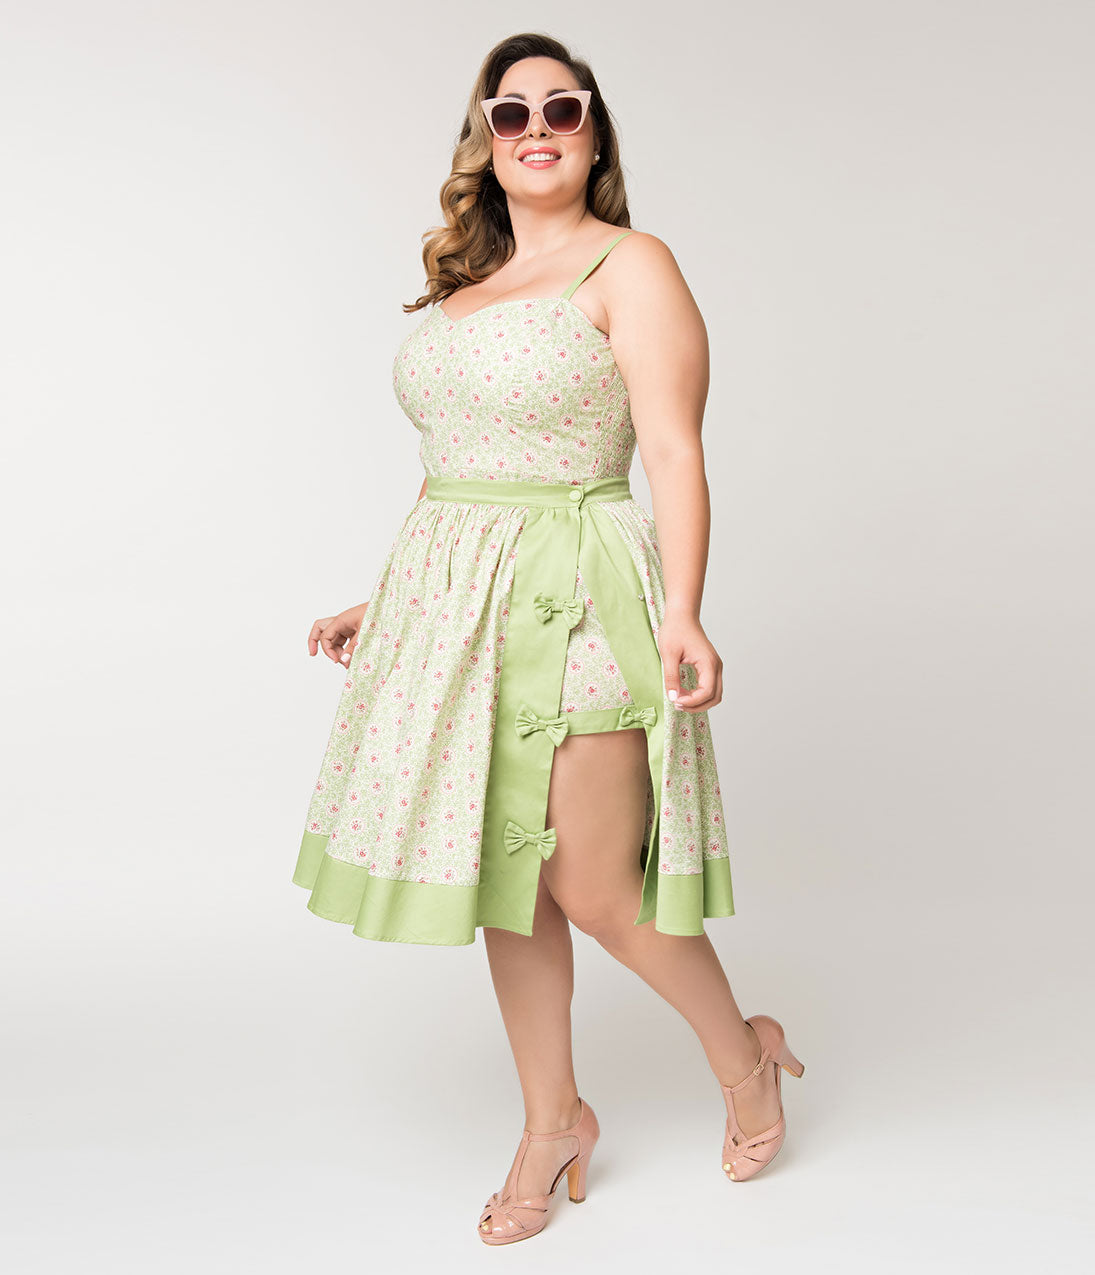 c8e22b3b89 Unique Vintage Plus Size Mint Green   Polka Dot Floral Rye Swing Skirt